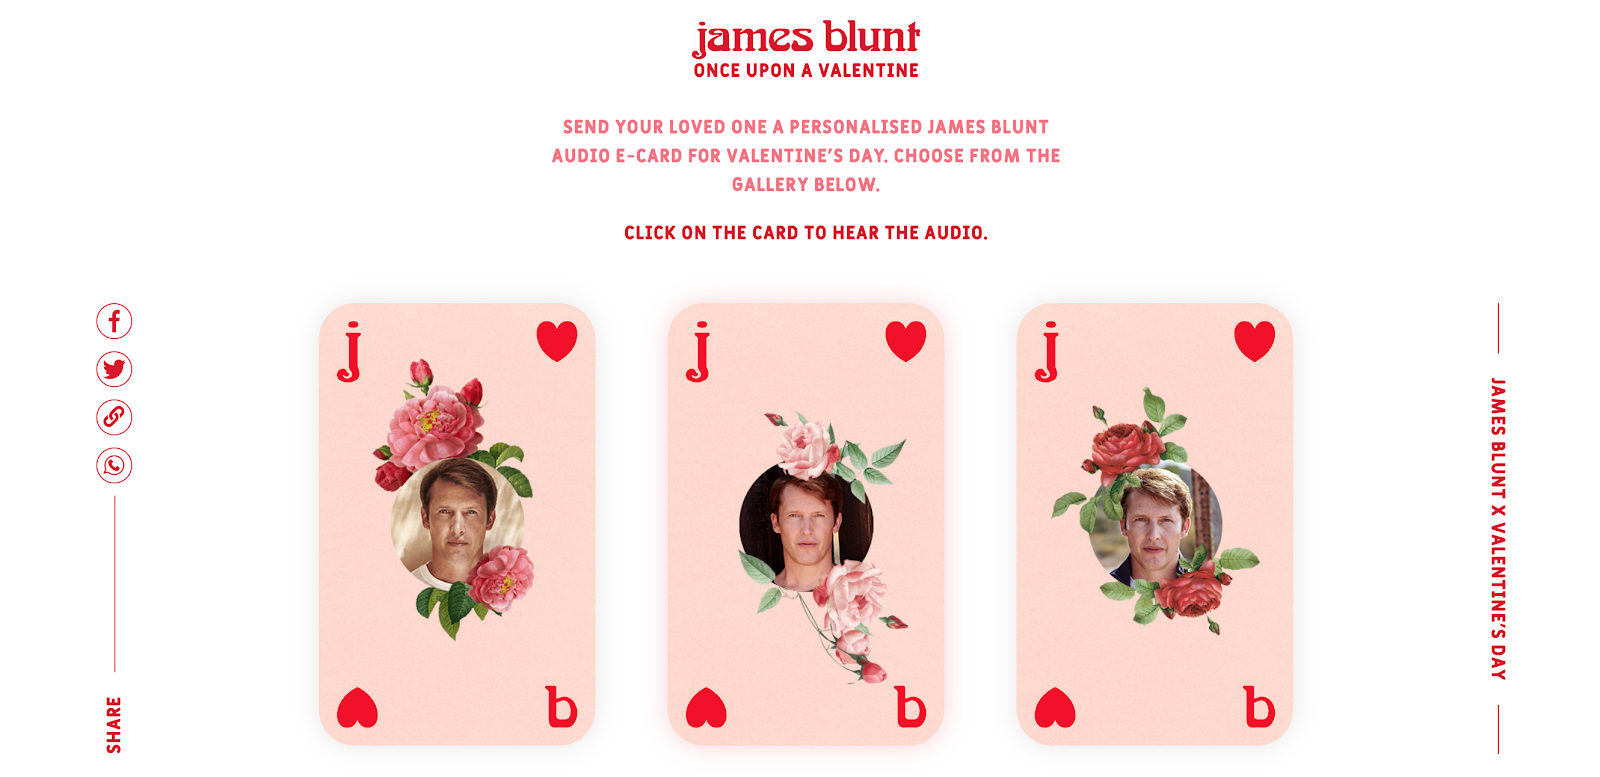 James Blunt Once Upon a Valentine Landing Page